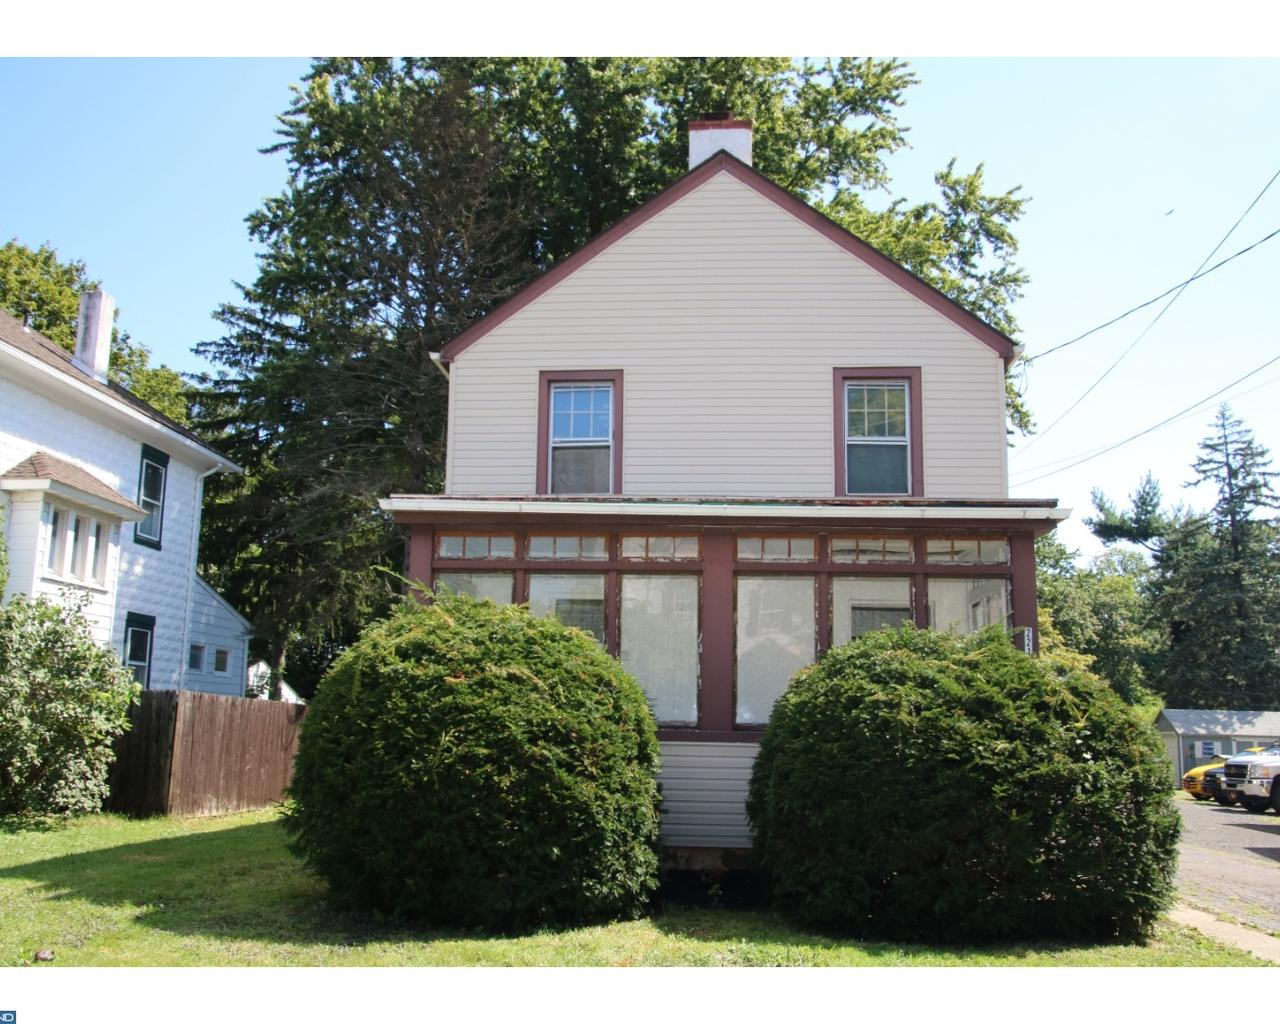 Property for sale at 221 N PINE ST, Langhorne,  PA 19047